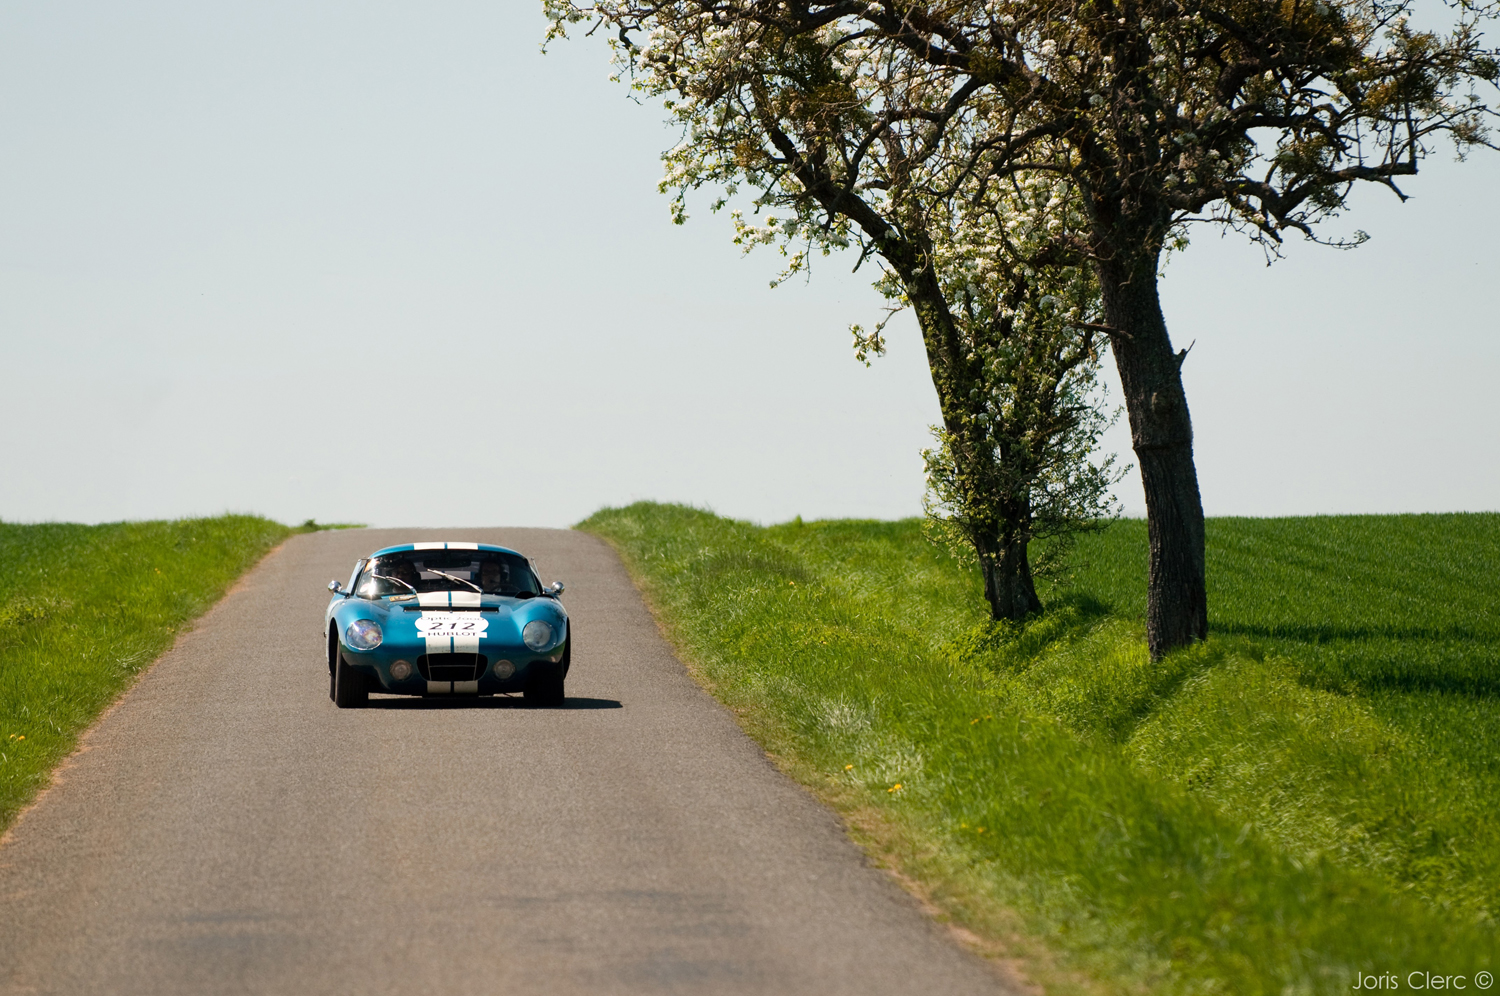 Tour Auto 2013 Optic 2000 – Joris Clerc – AC Cobra Daytona